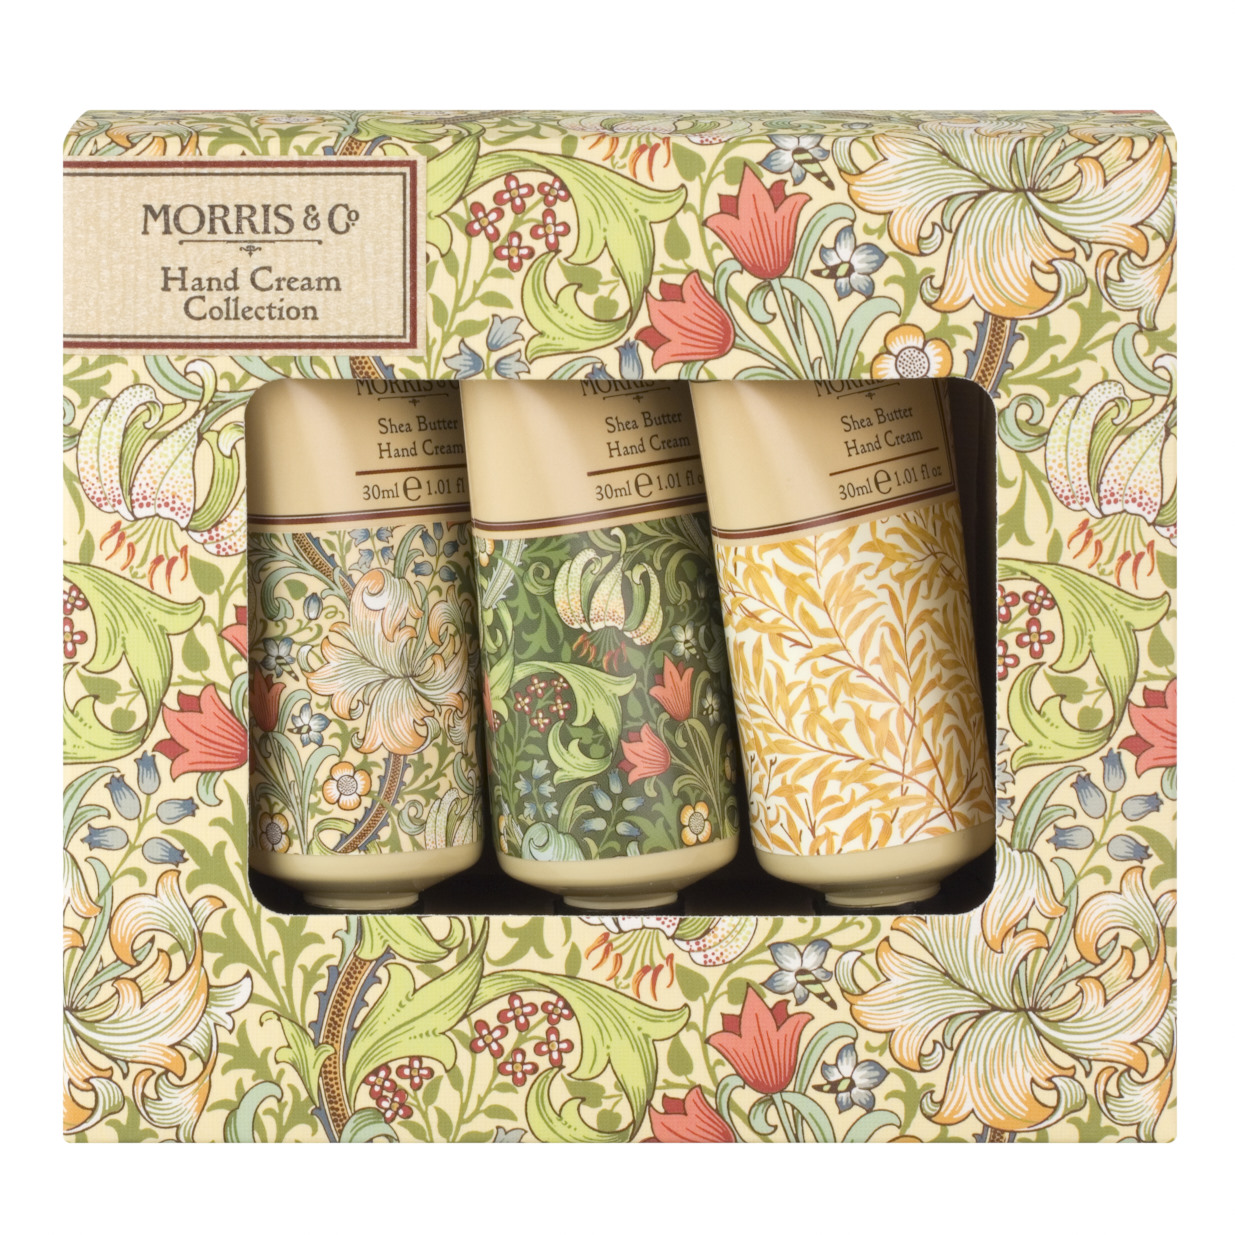 Morris & Co Golden Lily Hand Cream Collection Box